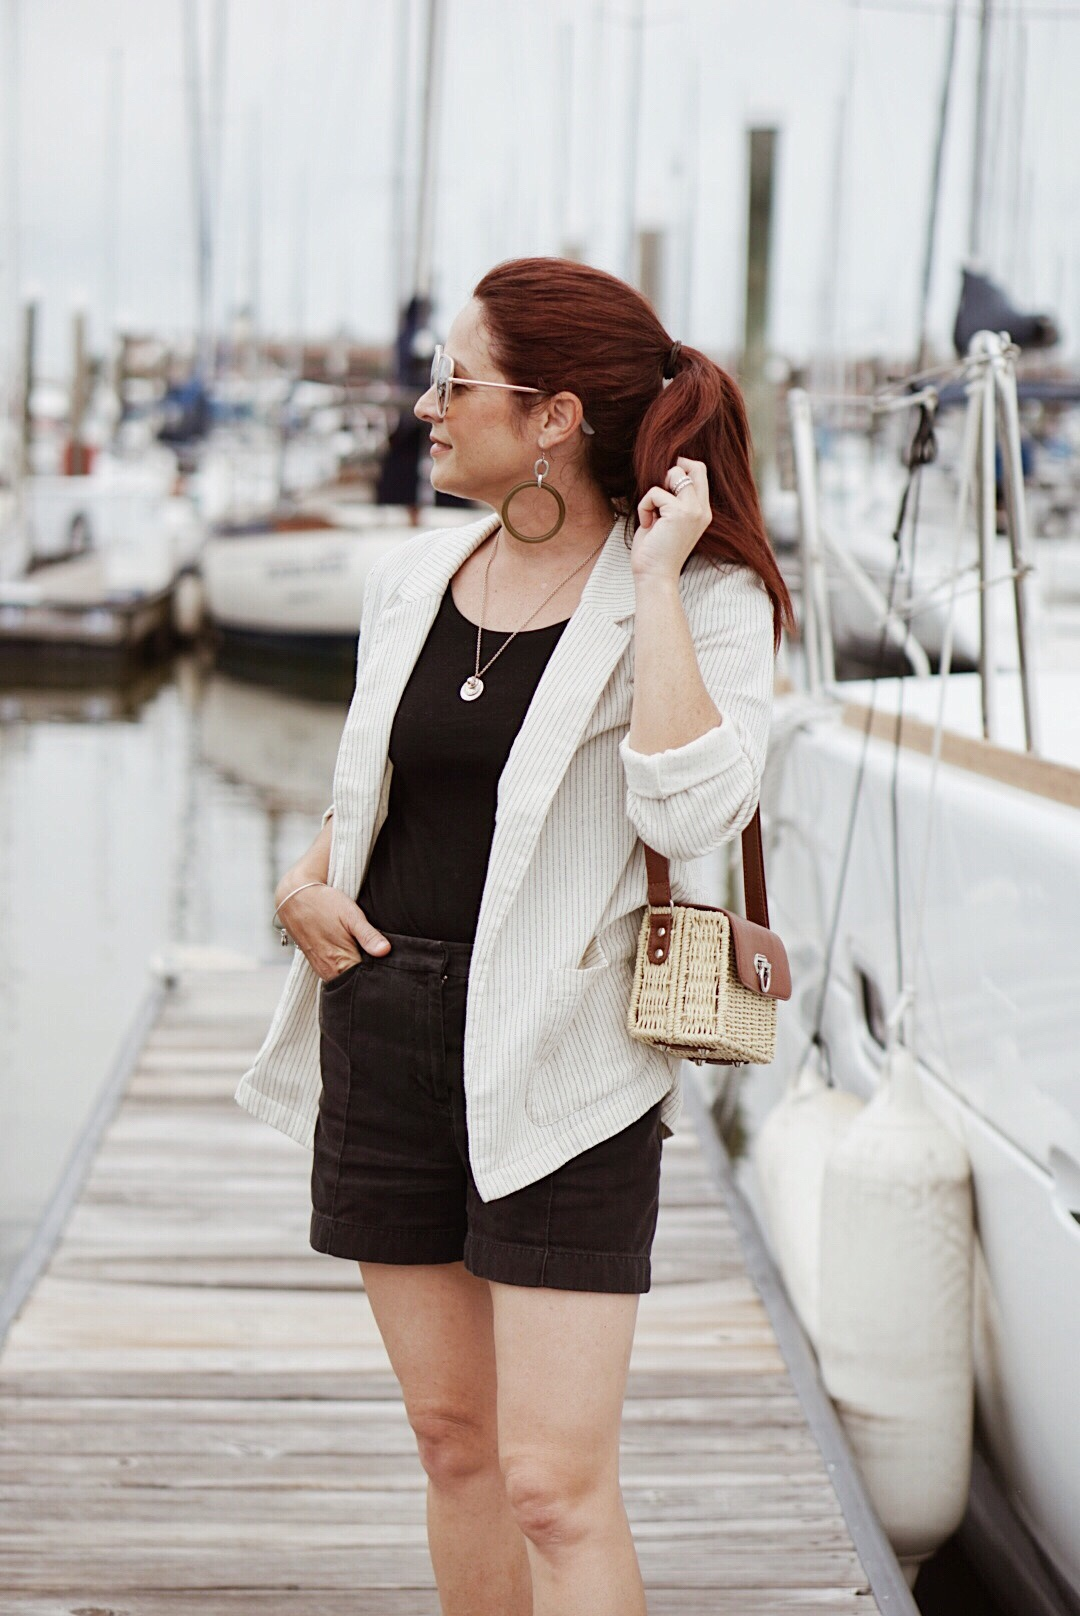 casual style, styling with blazers, linen blazers, style inspiration, nautical style